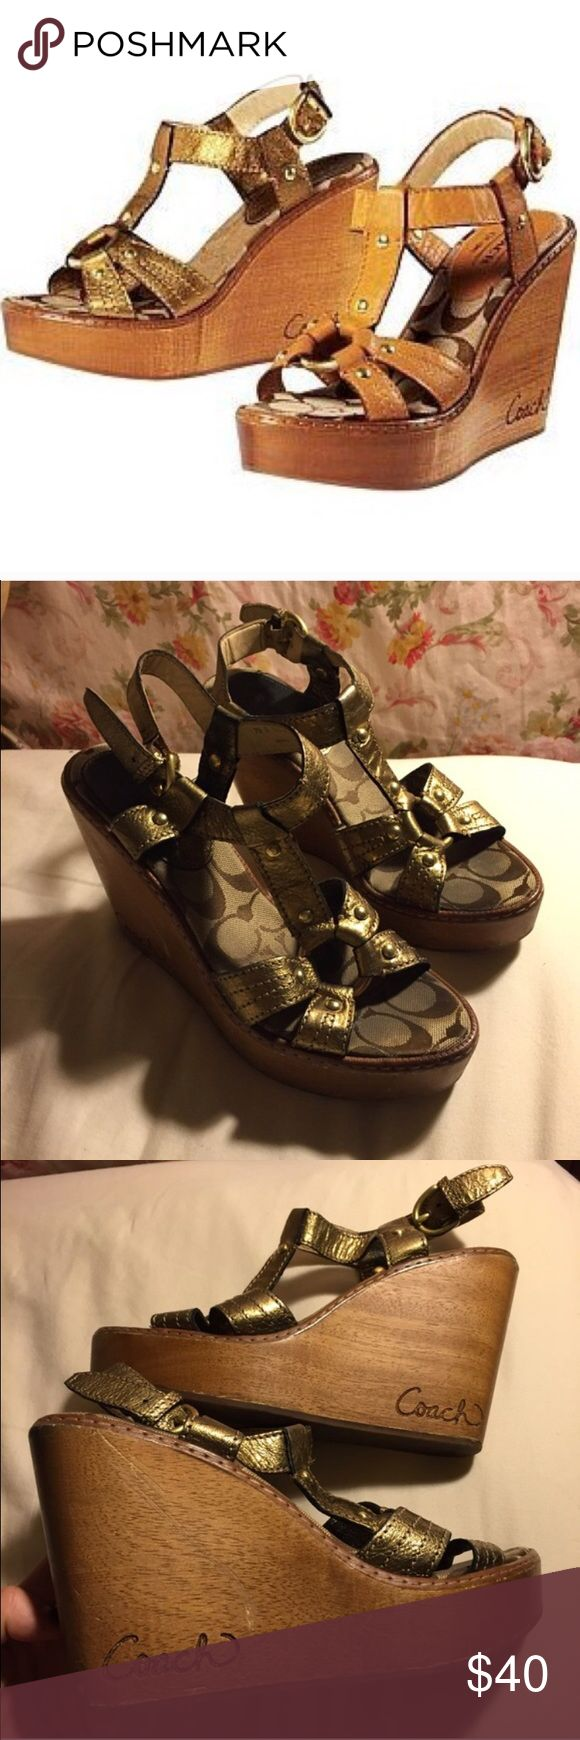 Coach Wood Wedges Gorgeous golden wood wedges in the Brawn style from Coach. Every closet needs a pair of these! So easy to walk and stand in, very comfortable, and have a good solid weight to them without being heavy. Brass buckle and ornament. Fair preloved condition, some scratches on the wood and the C canvas print in the footbed has darkened, but tons of life left in these puppies! Coach Shoes Wedges